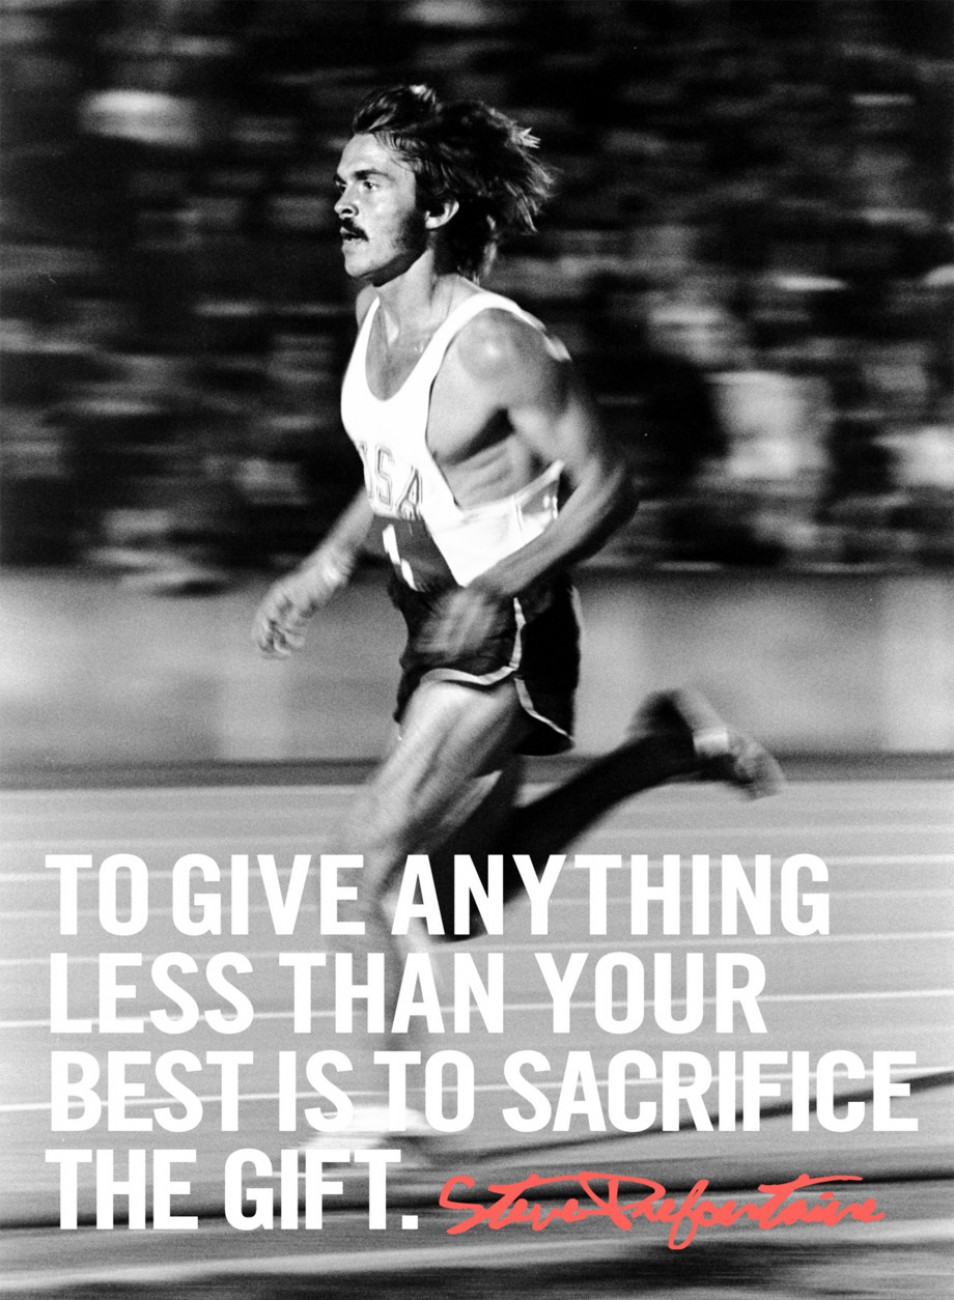 Steve Prefontaine Quotes | Cropped Steve Prefontaine Quotes Day 47 10 Great Running Quotes And